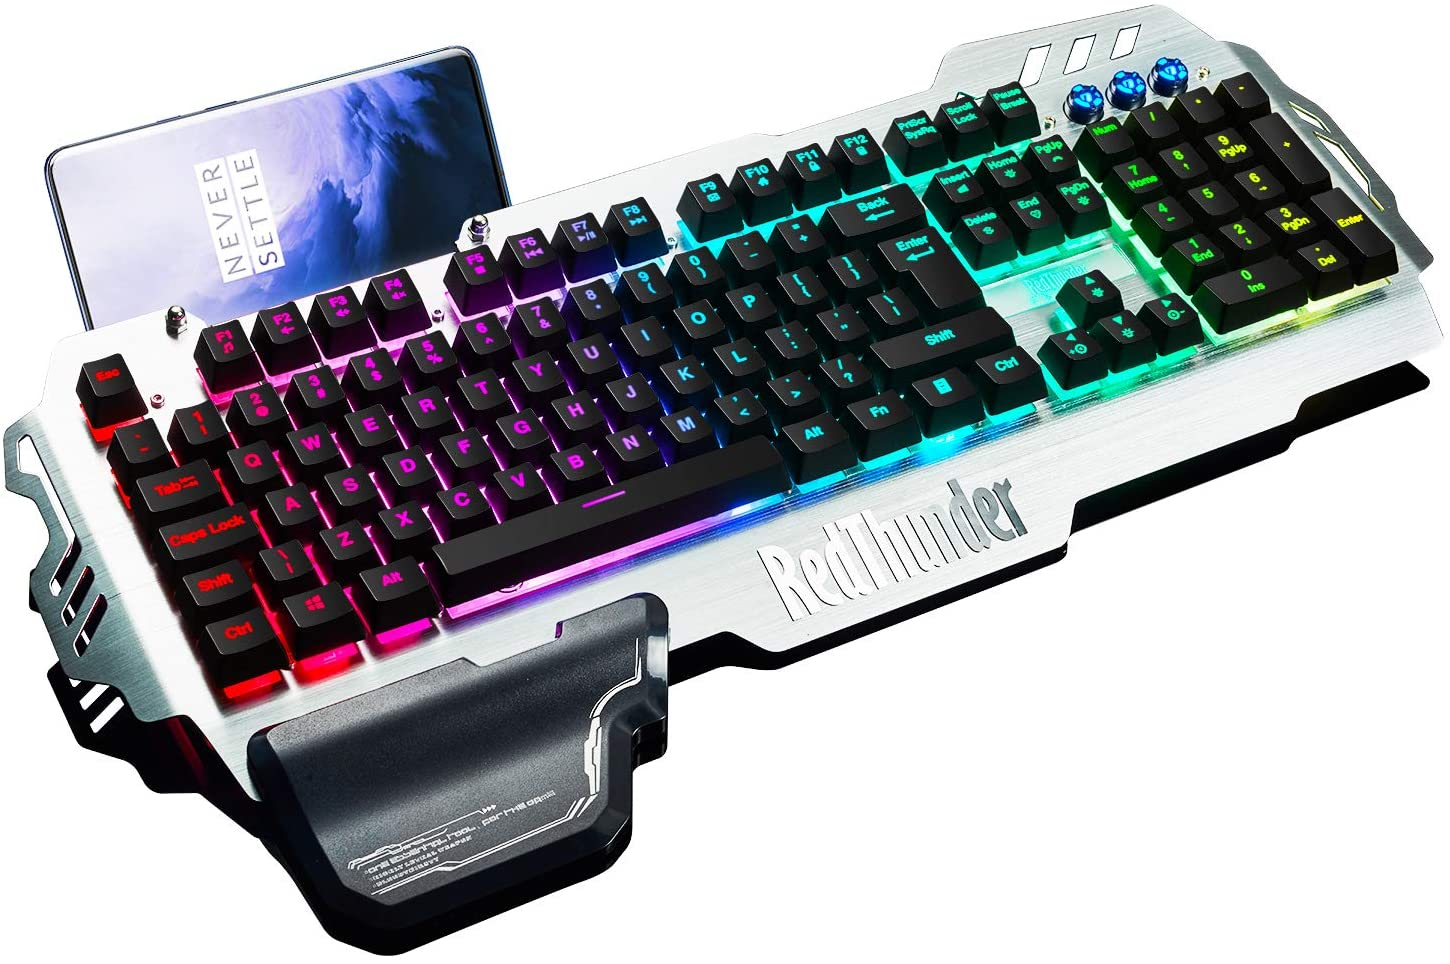 RedThunder K900 Gaming Keyboard, RGB Backlit Semi Mechanical Keyboard with Wrist Rest, Water-Resistant USB Wired Hybrid Ergonomic Keyboard, Teclado Gamer for Desktop Computer PC Mac PS4